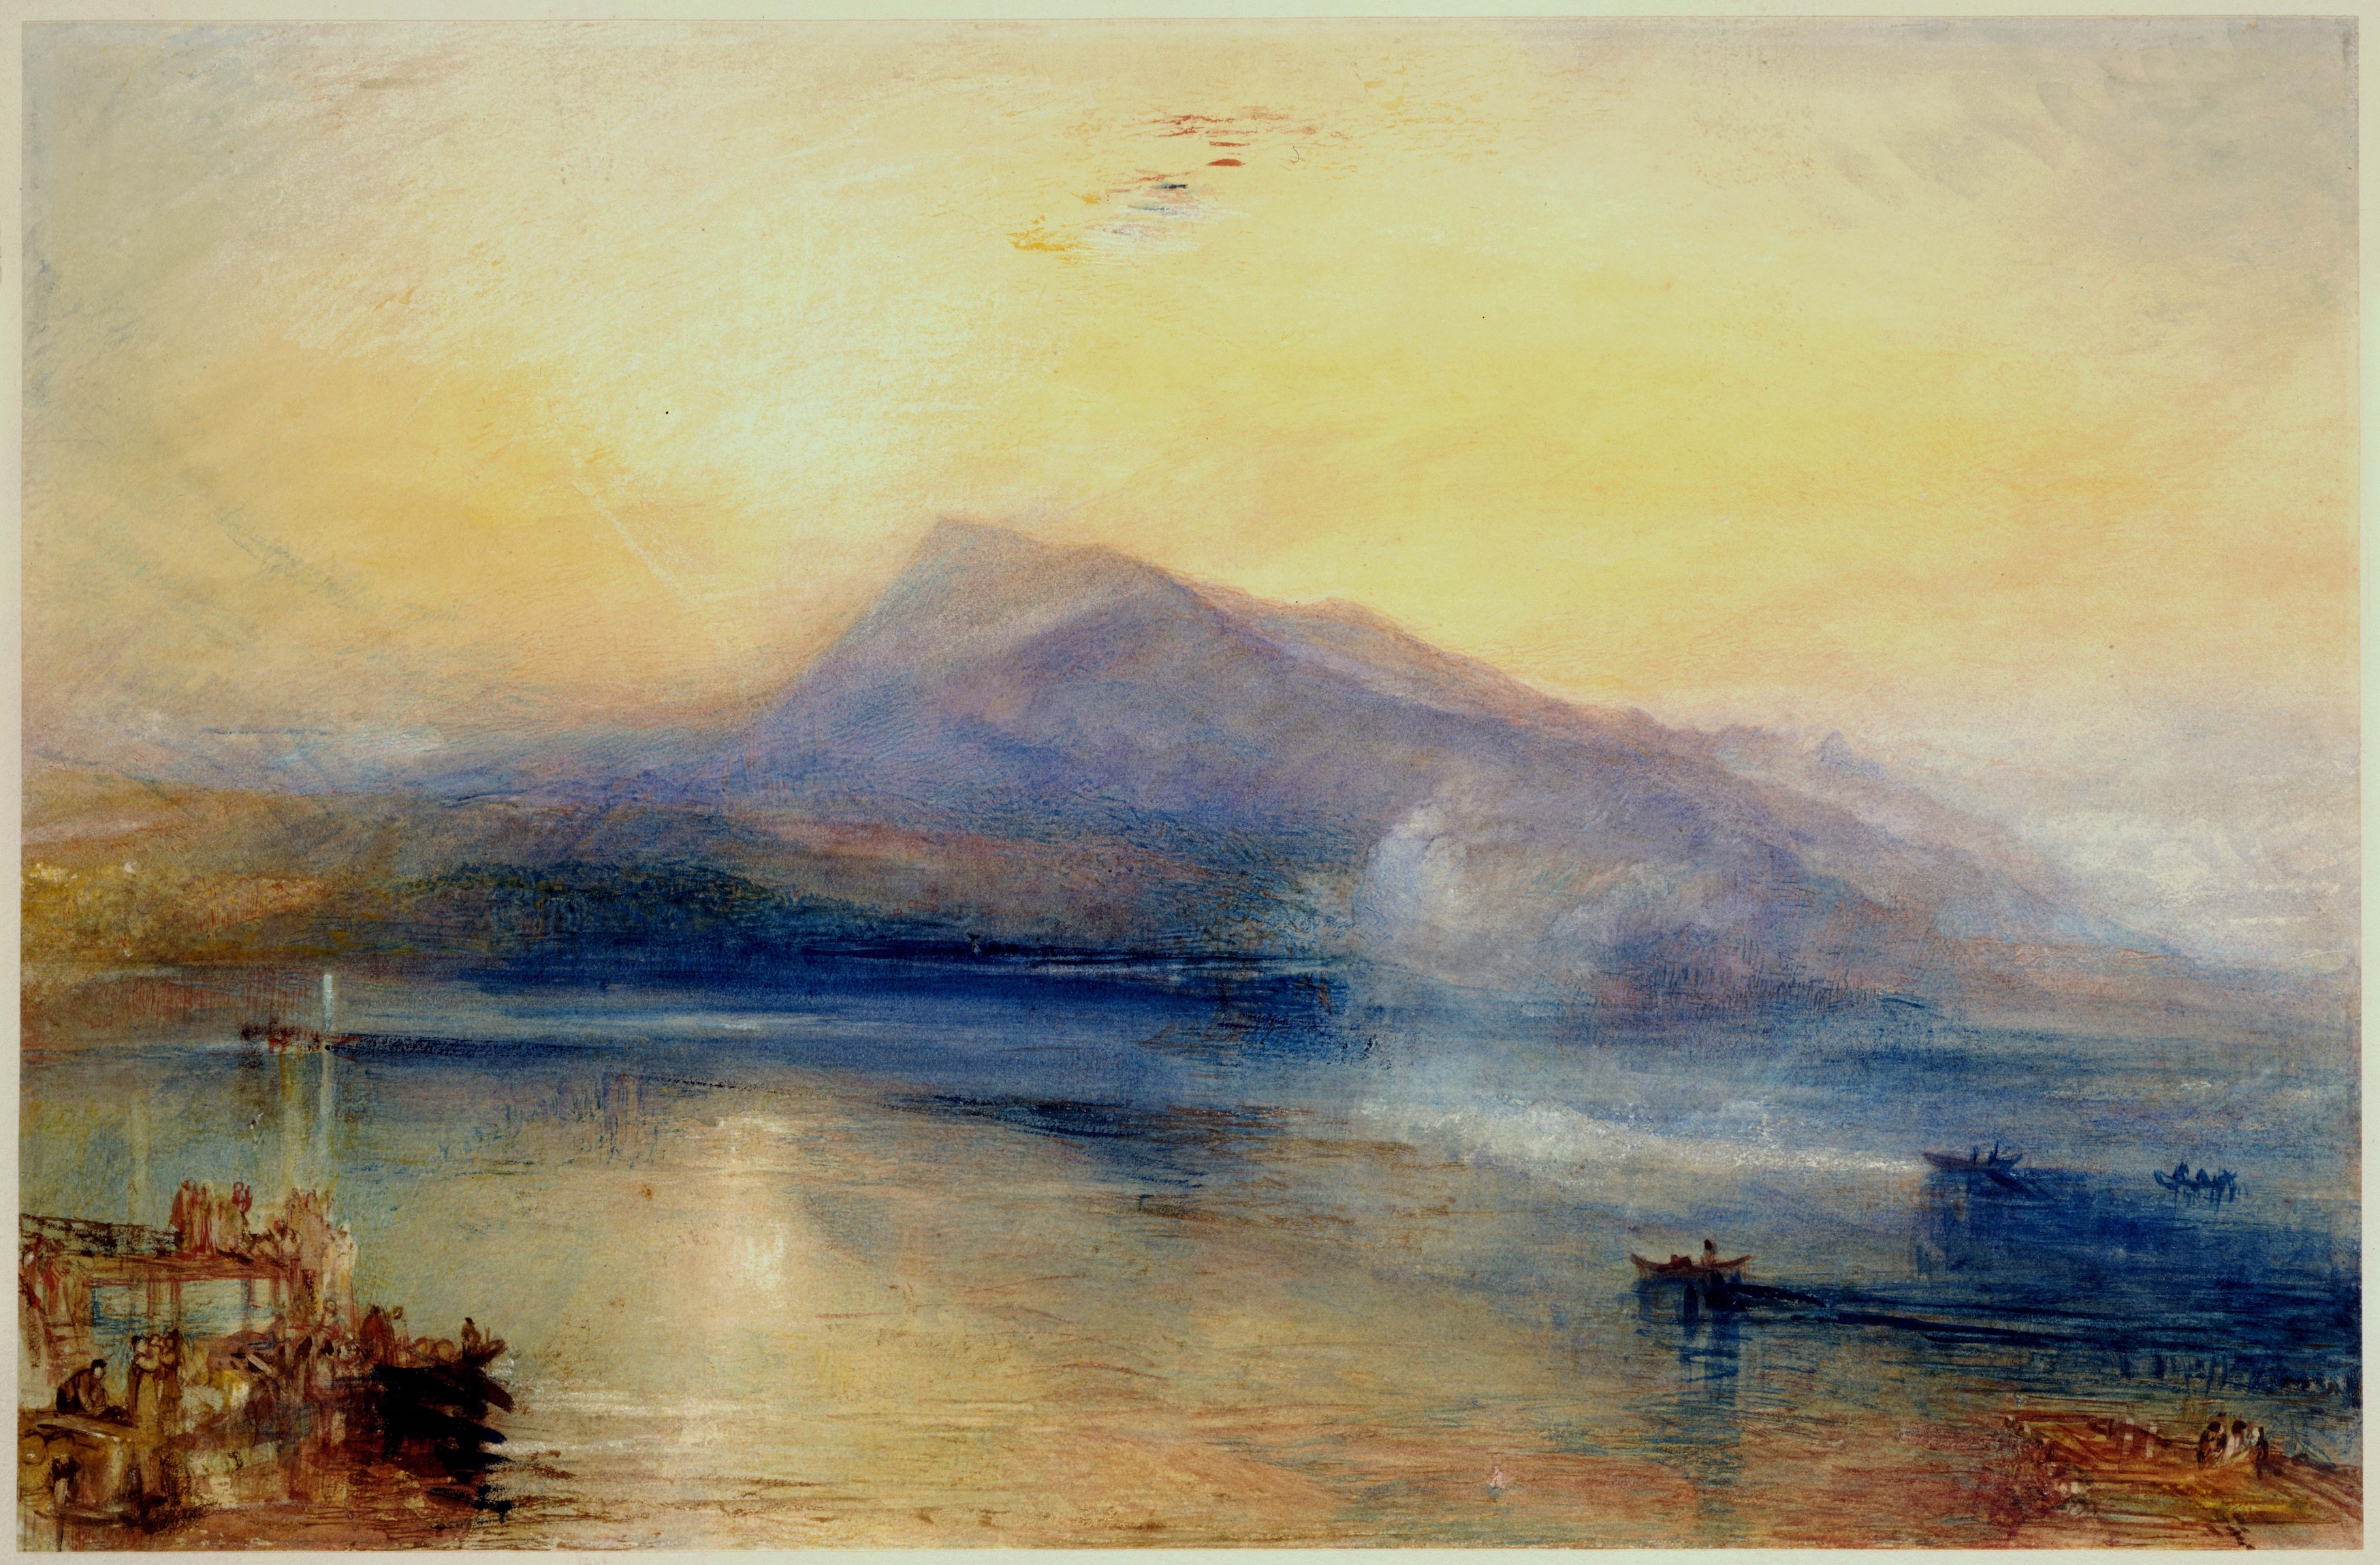 £10m bid to save late Turner